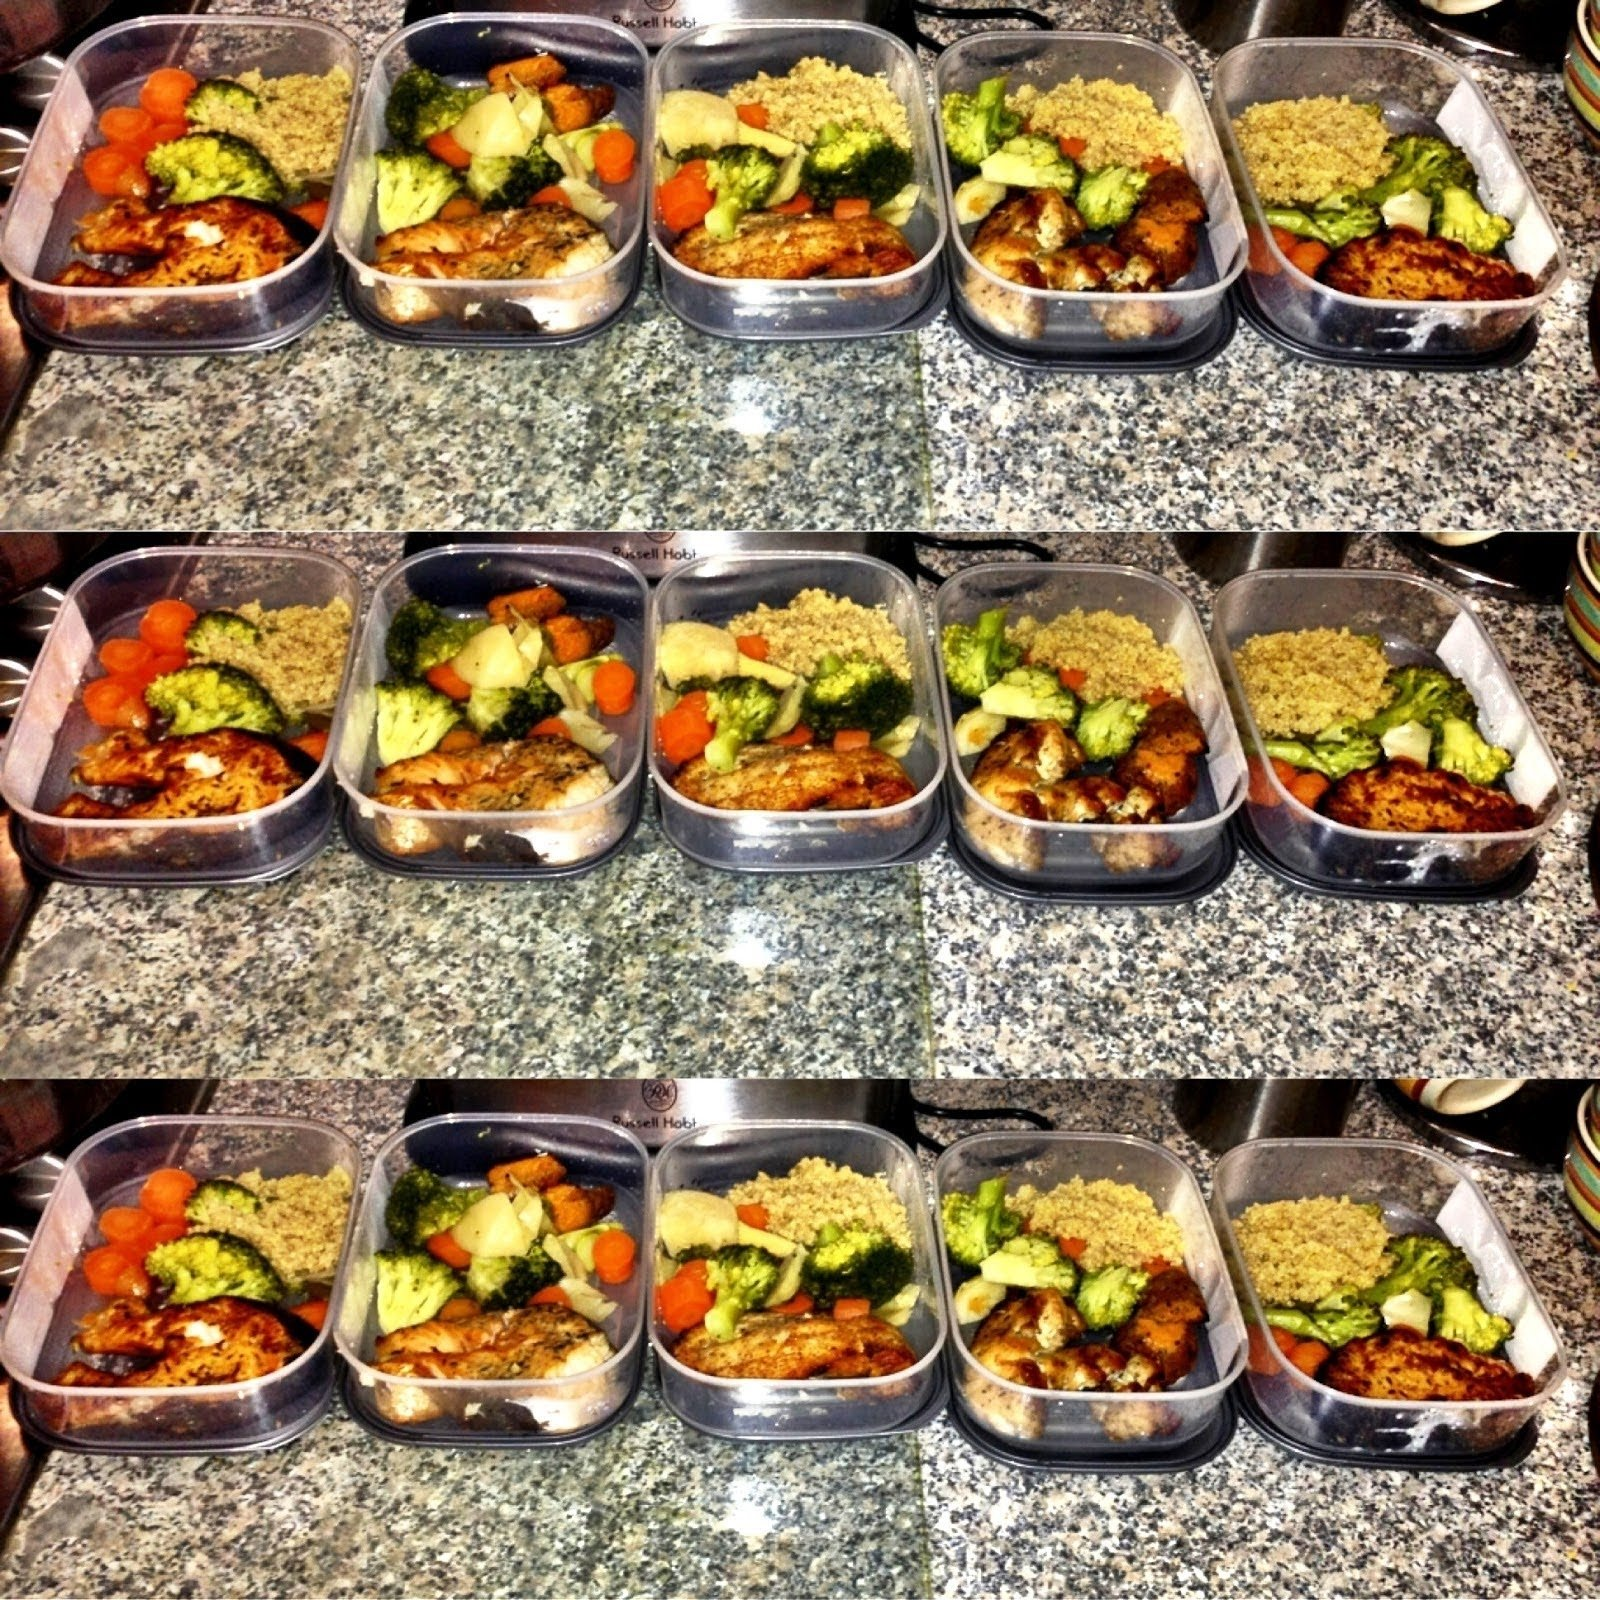 10 Pretty Clean Eating Meal Prep Ideas meal prep for weight loss detoxing clean eating youtube 2020